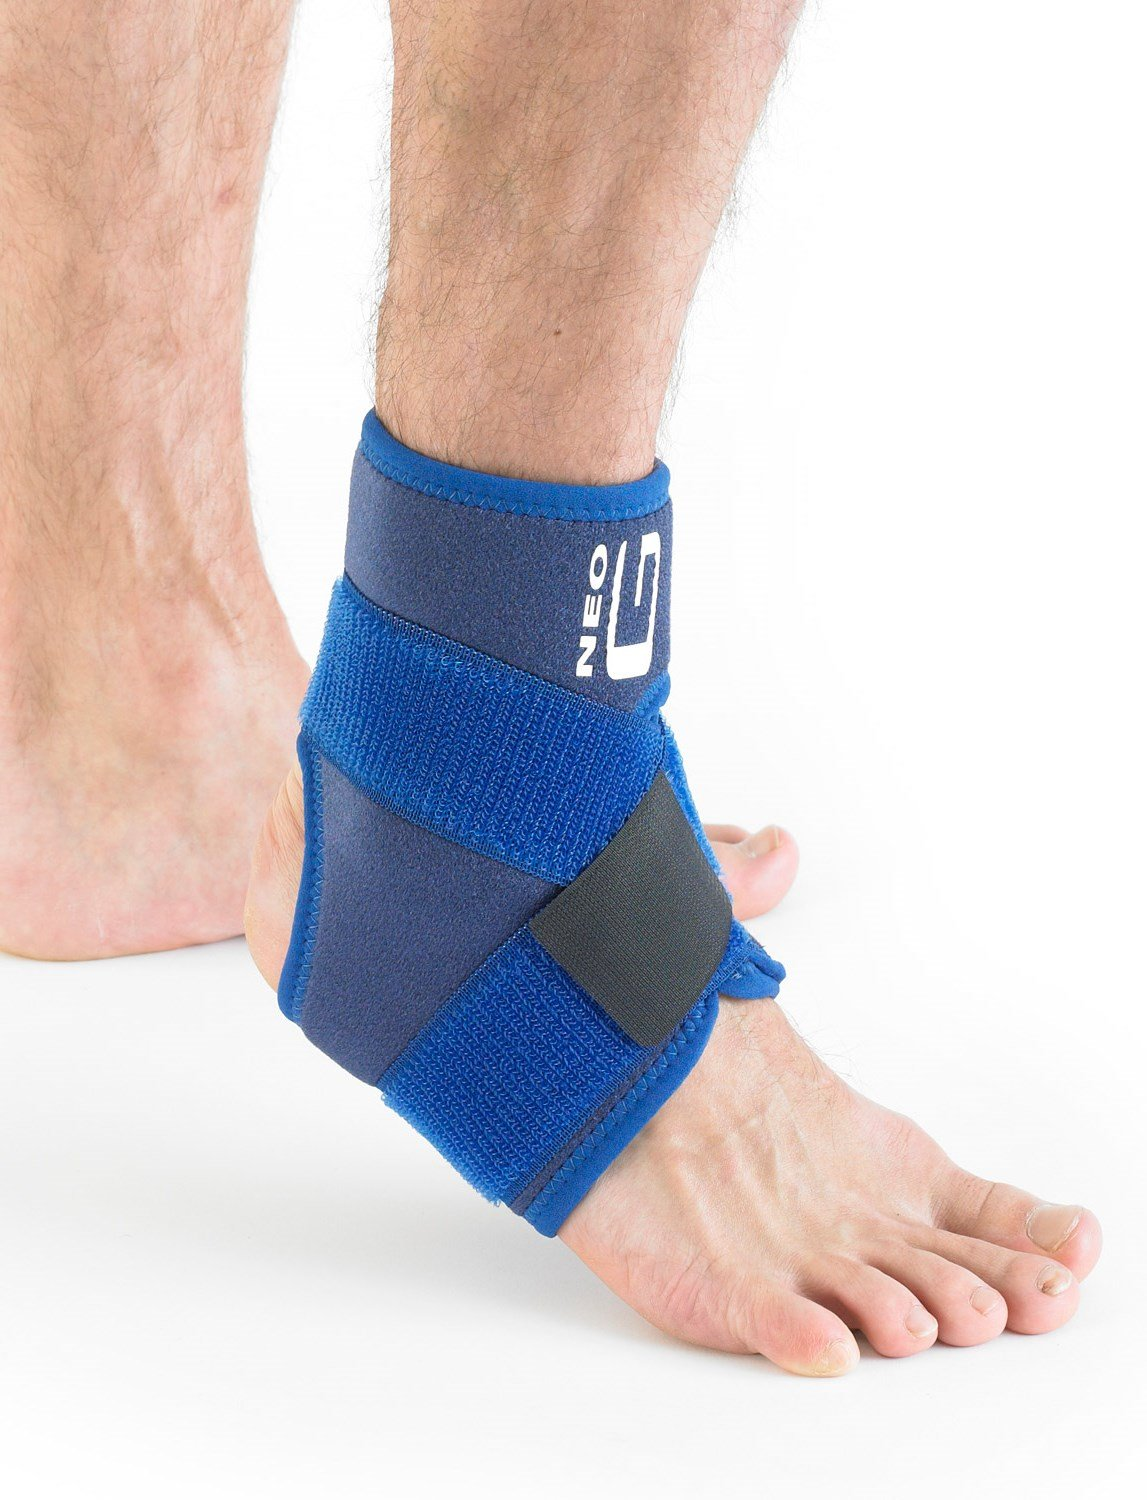 Neo G Ankle Support with figure of 8 Strap by Neo-G